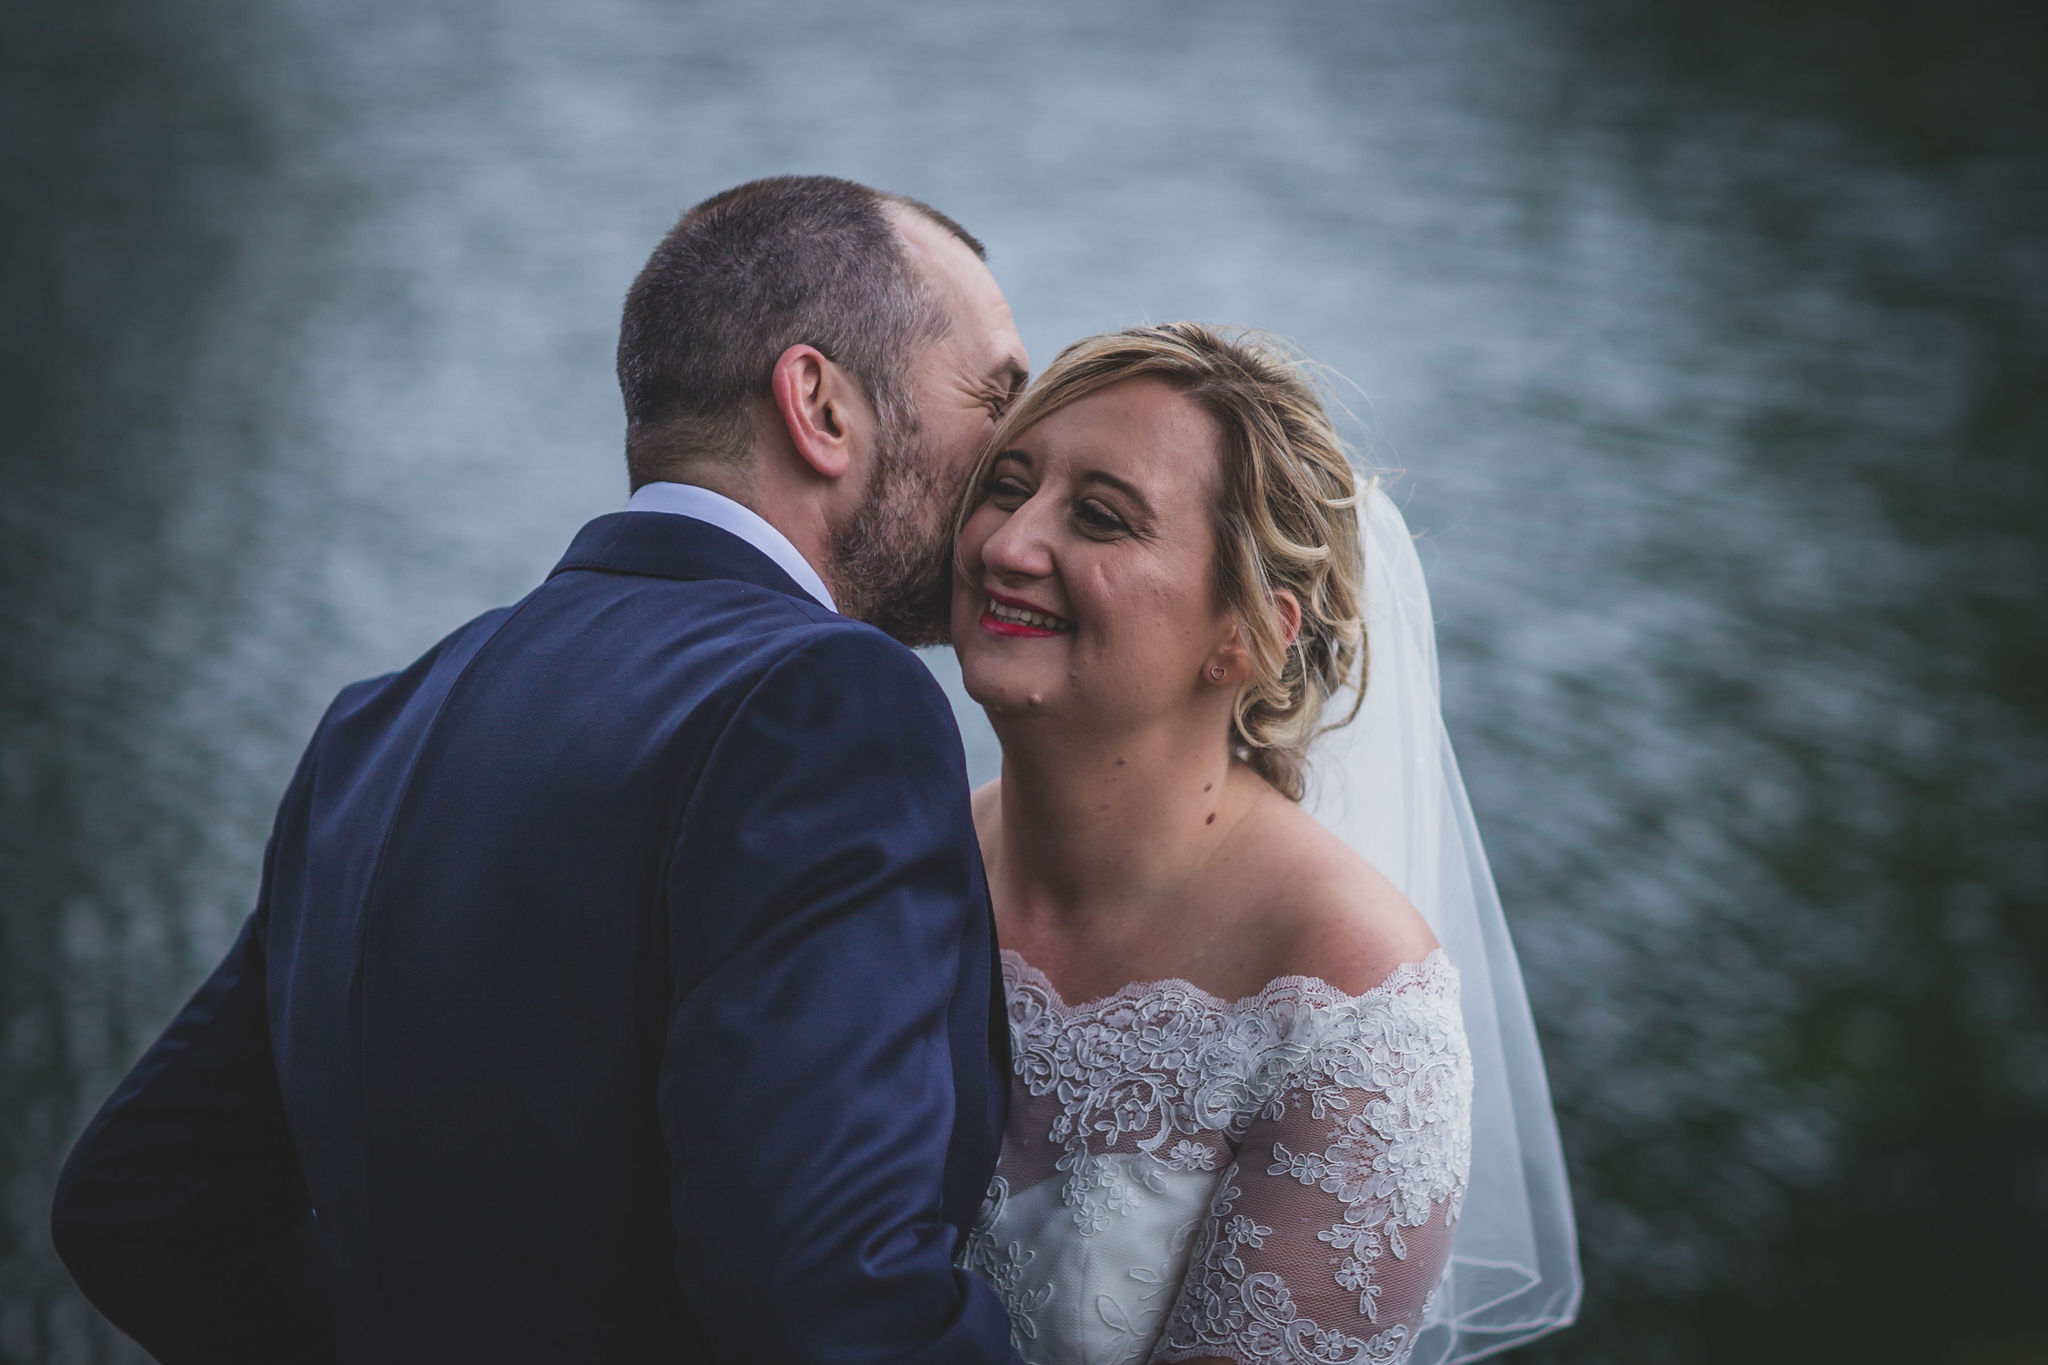 Colehayes Park – Matt Spooner Wedding Photography – Devon Wedding Photographer